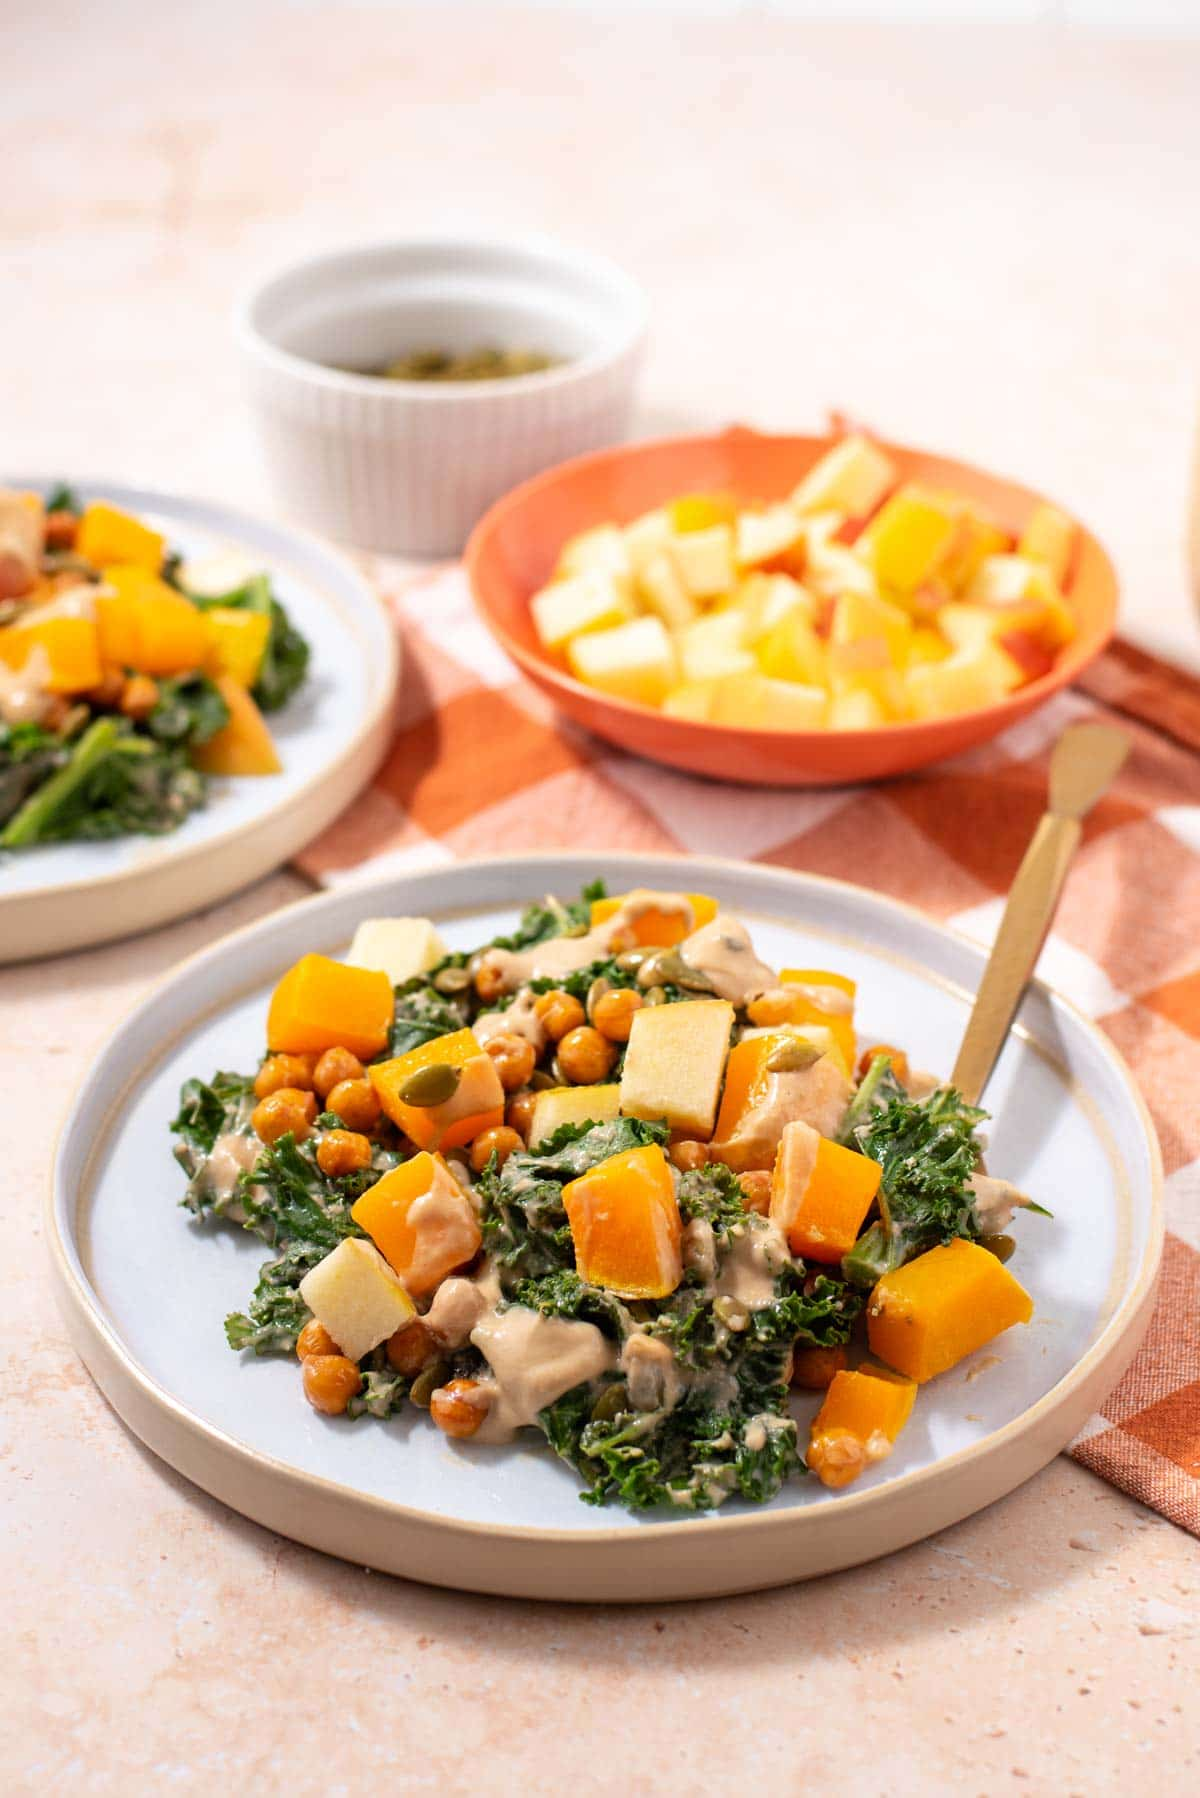 Kale and butternut squash salad on a white plate with bowl of sliced apple in the background